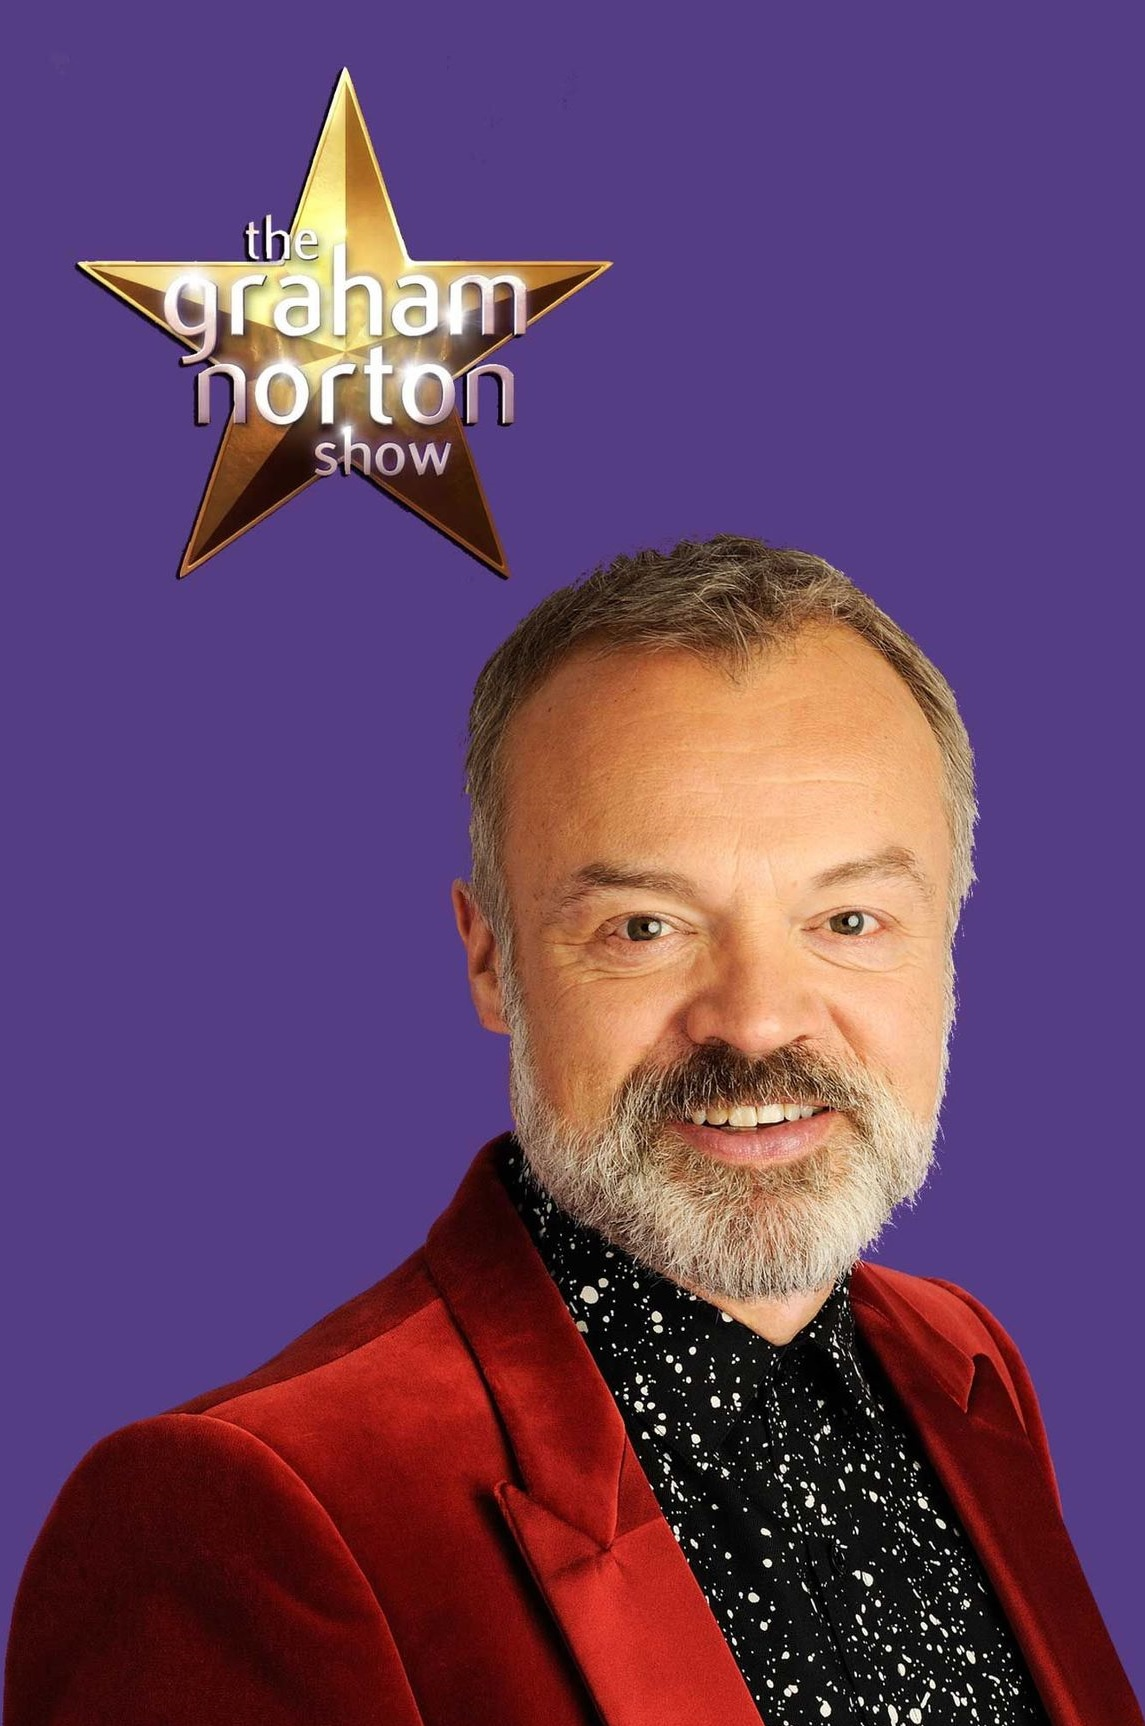 The Graham Norton Show - Season 26 Episode 4 - Arnold Schwarzenegger, Linda Hamilton, Debbie Harry, Nadiya Hussain